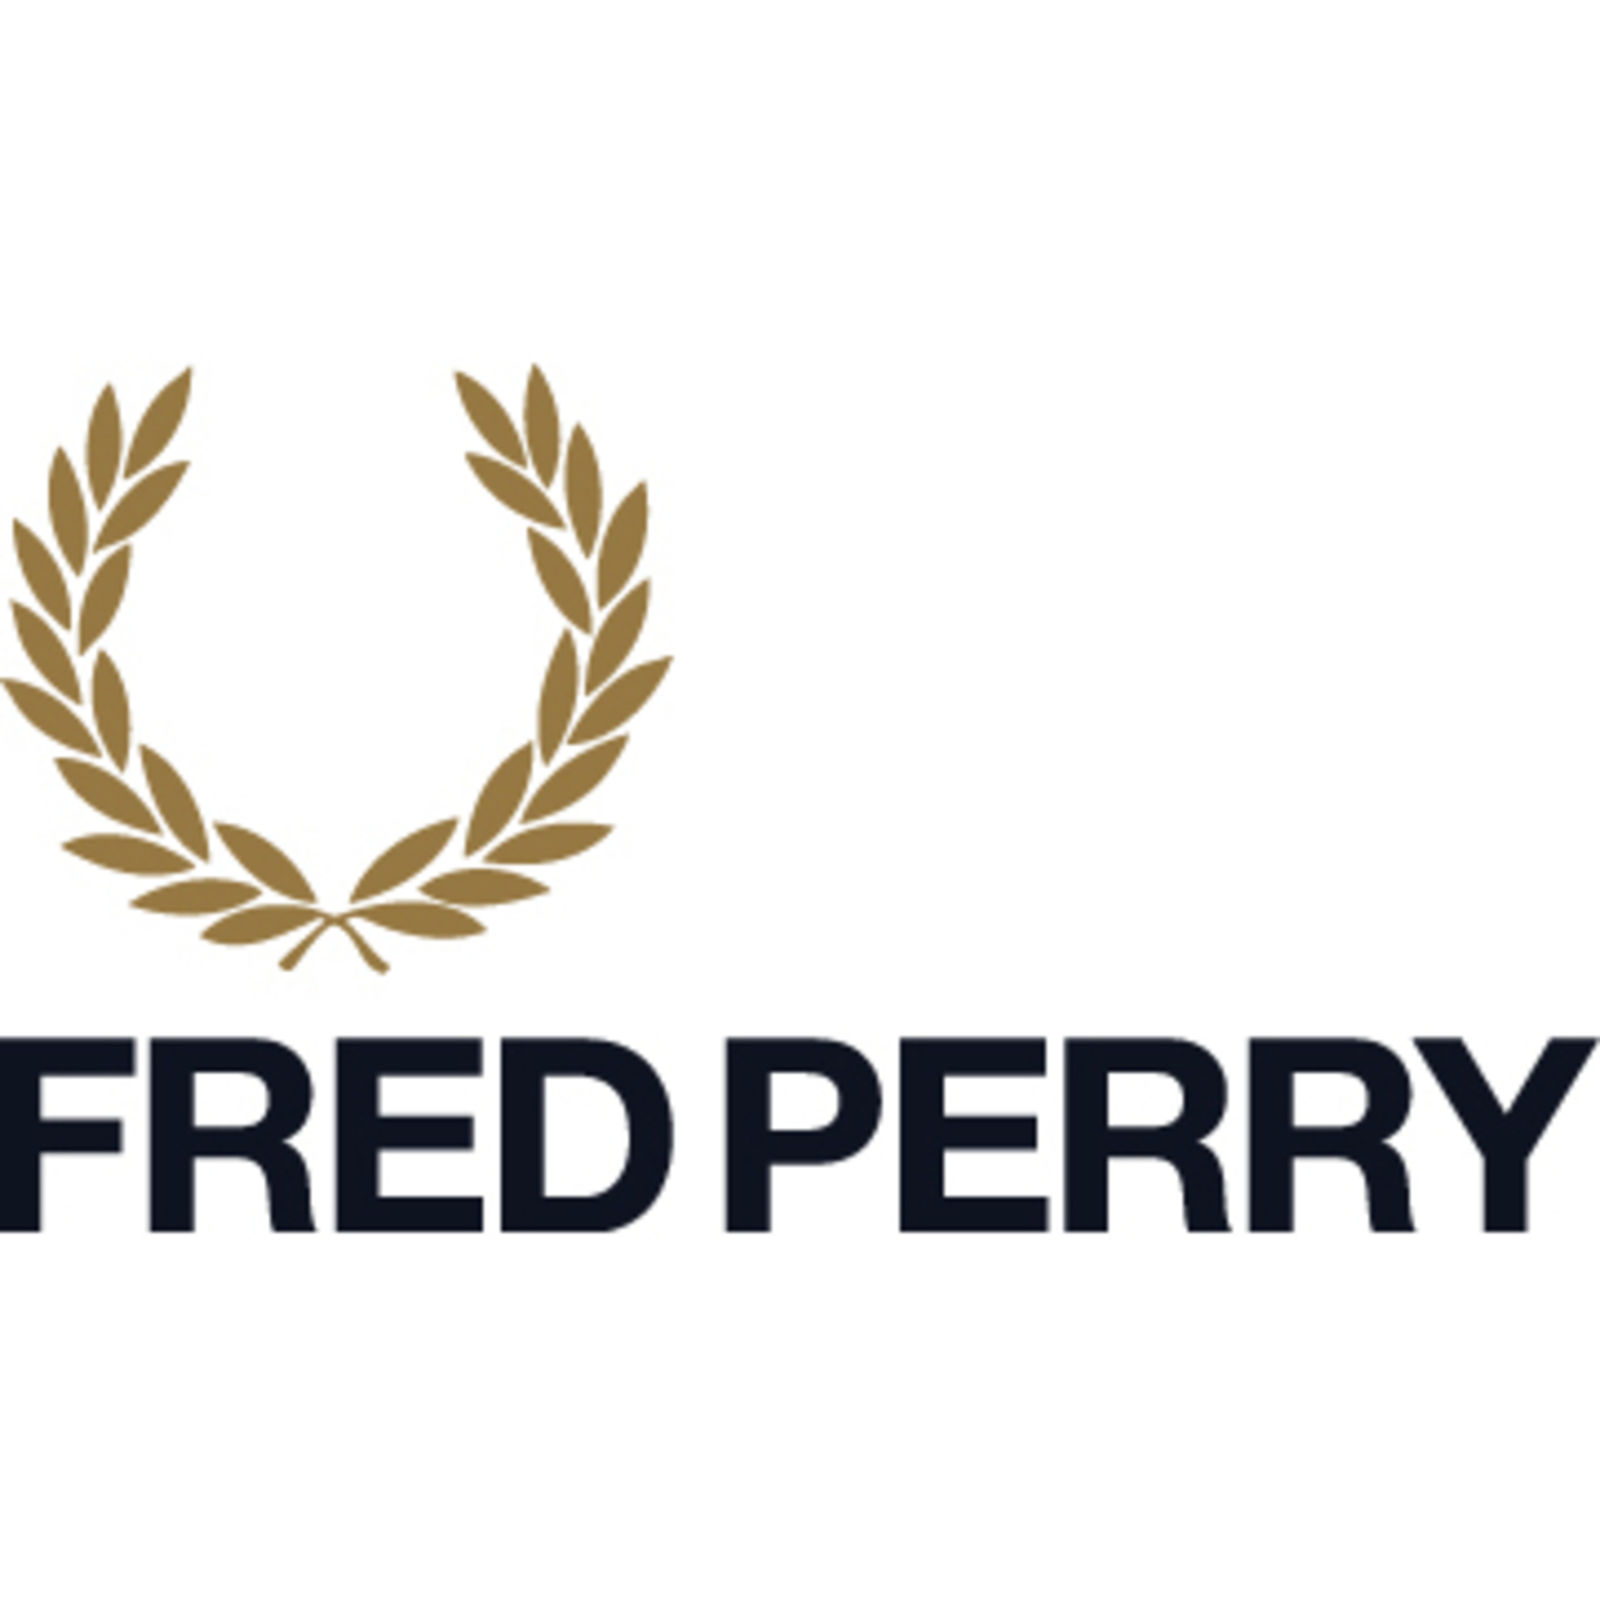 FRED PERRY Authentic | BRADLEY WIGGINS